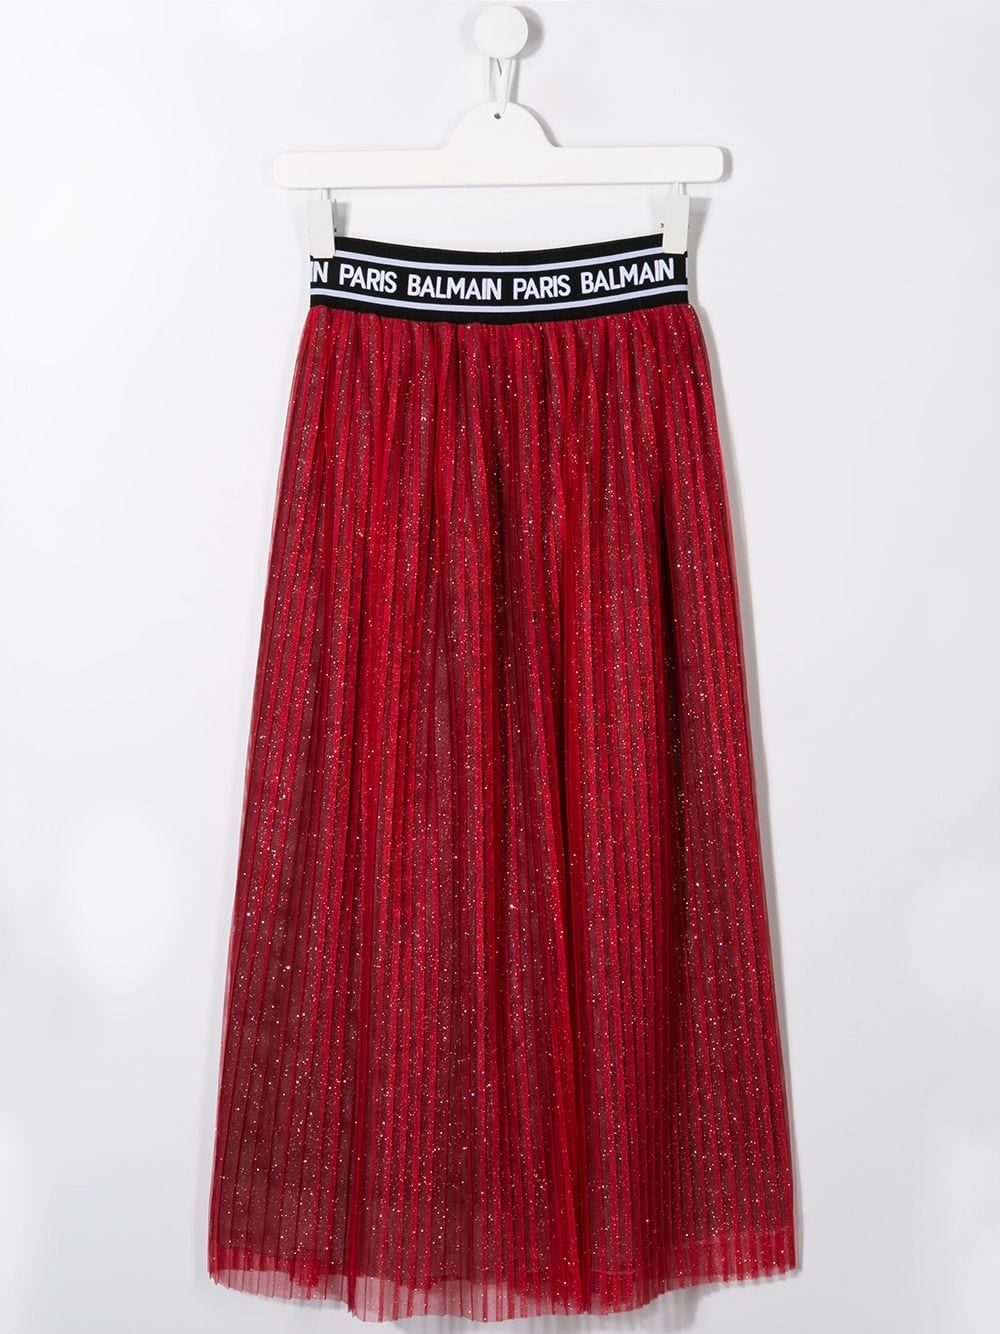 BALMAIN KIDS glitter pleated skirt red - Maison De Fashion